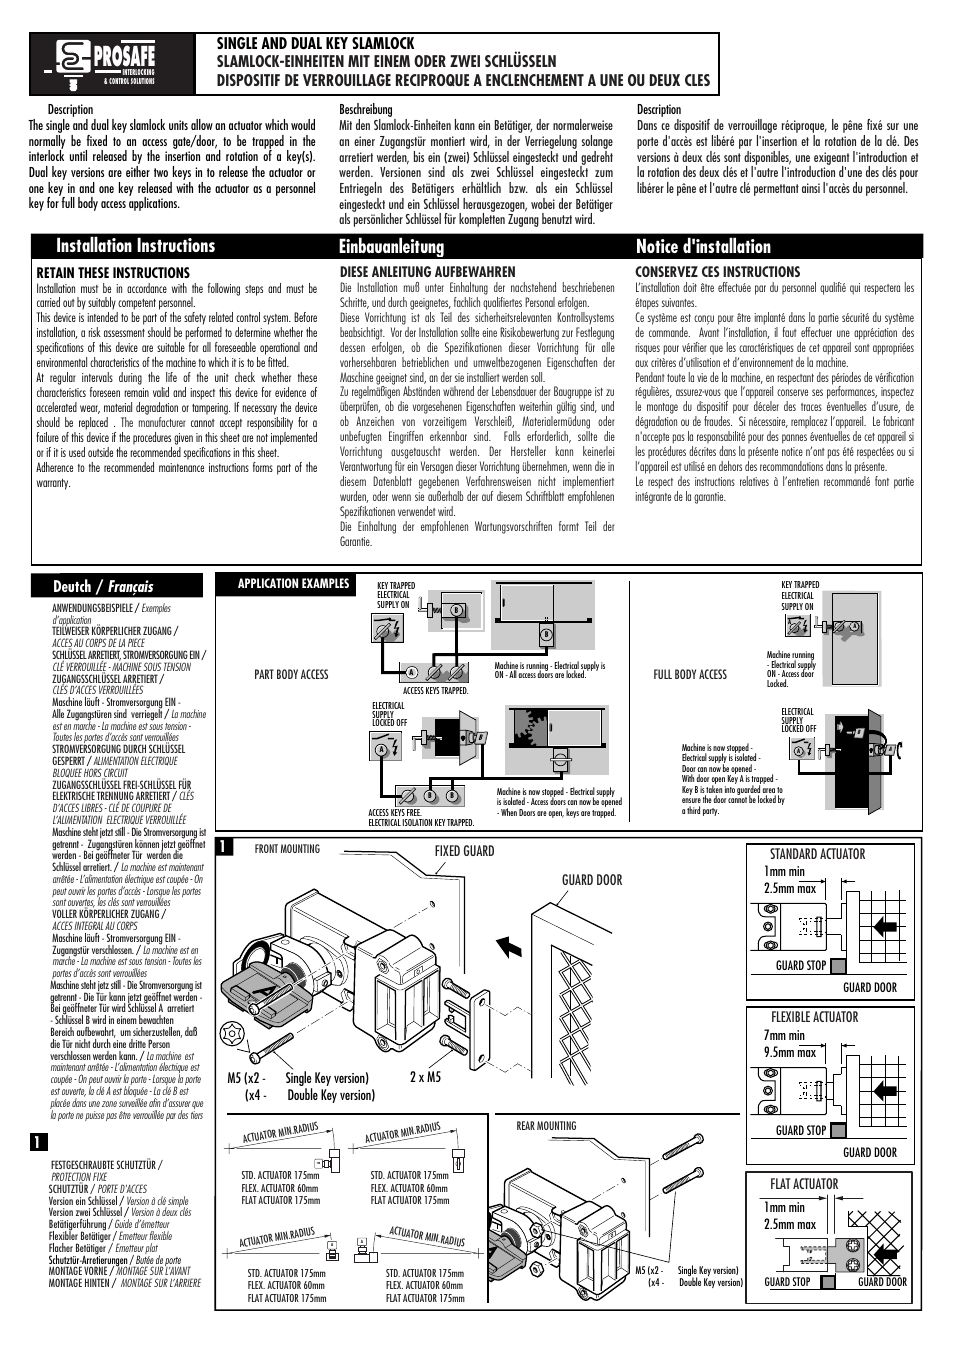 Rockwell Automation 440T Slamlock Trapped Key Interlock Switch User Manual  | 4 pages